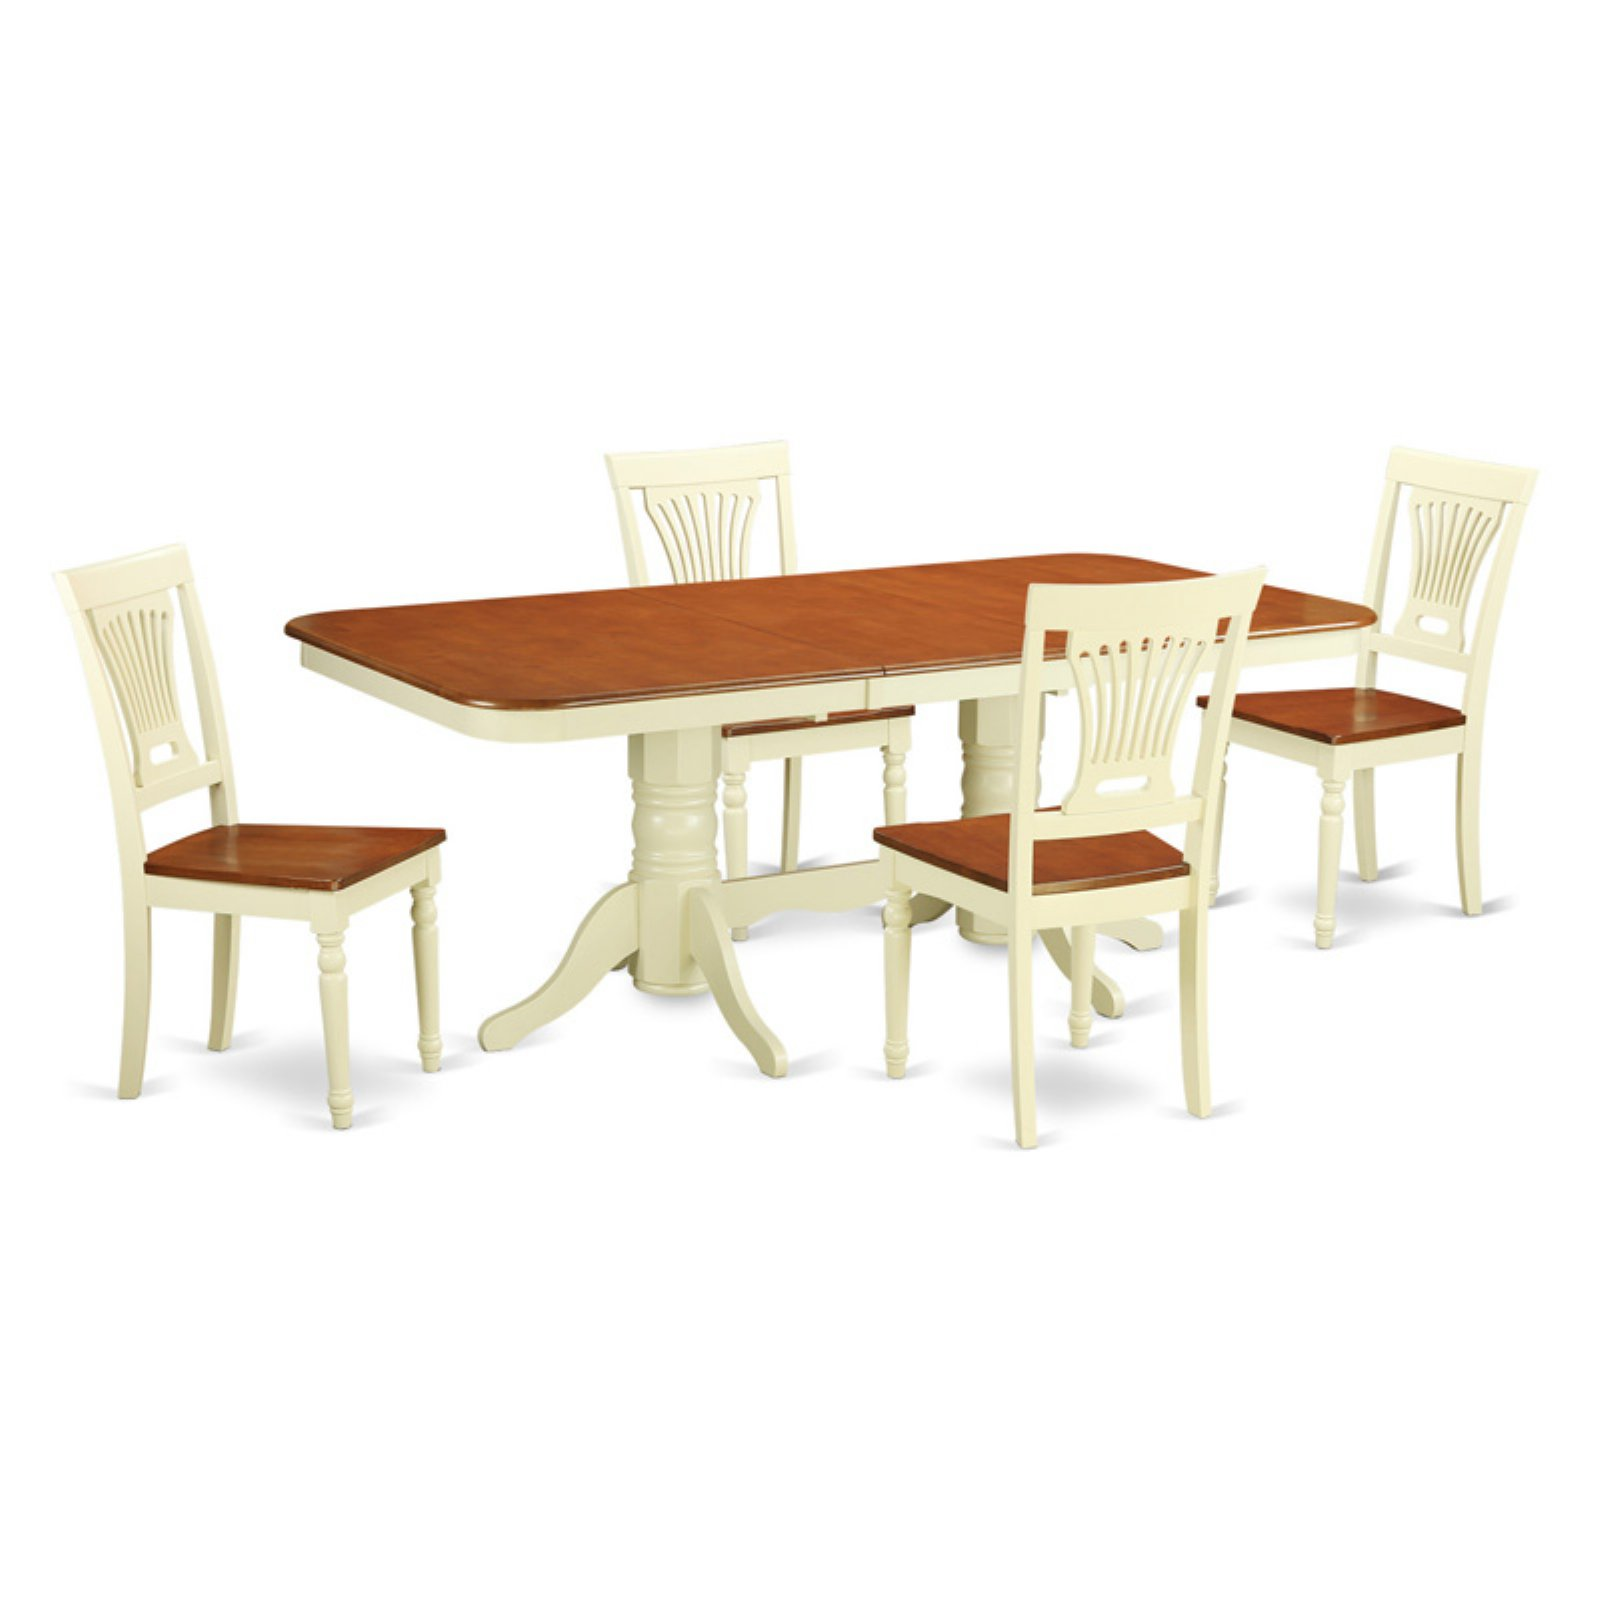 East West Furniture Kenley 5 Piece Dining Table Set with Plainview Chairs